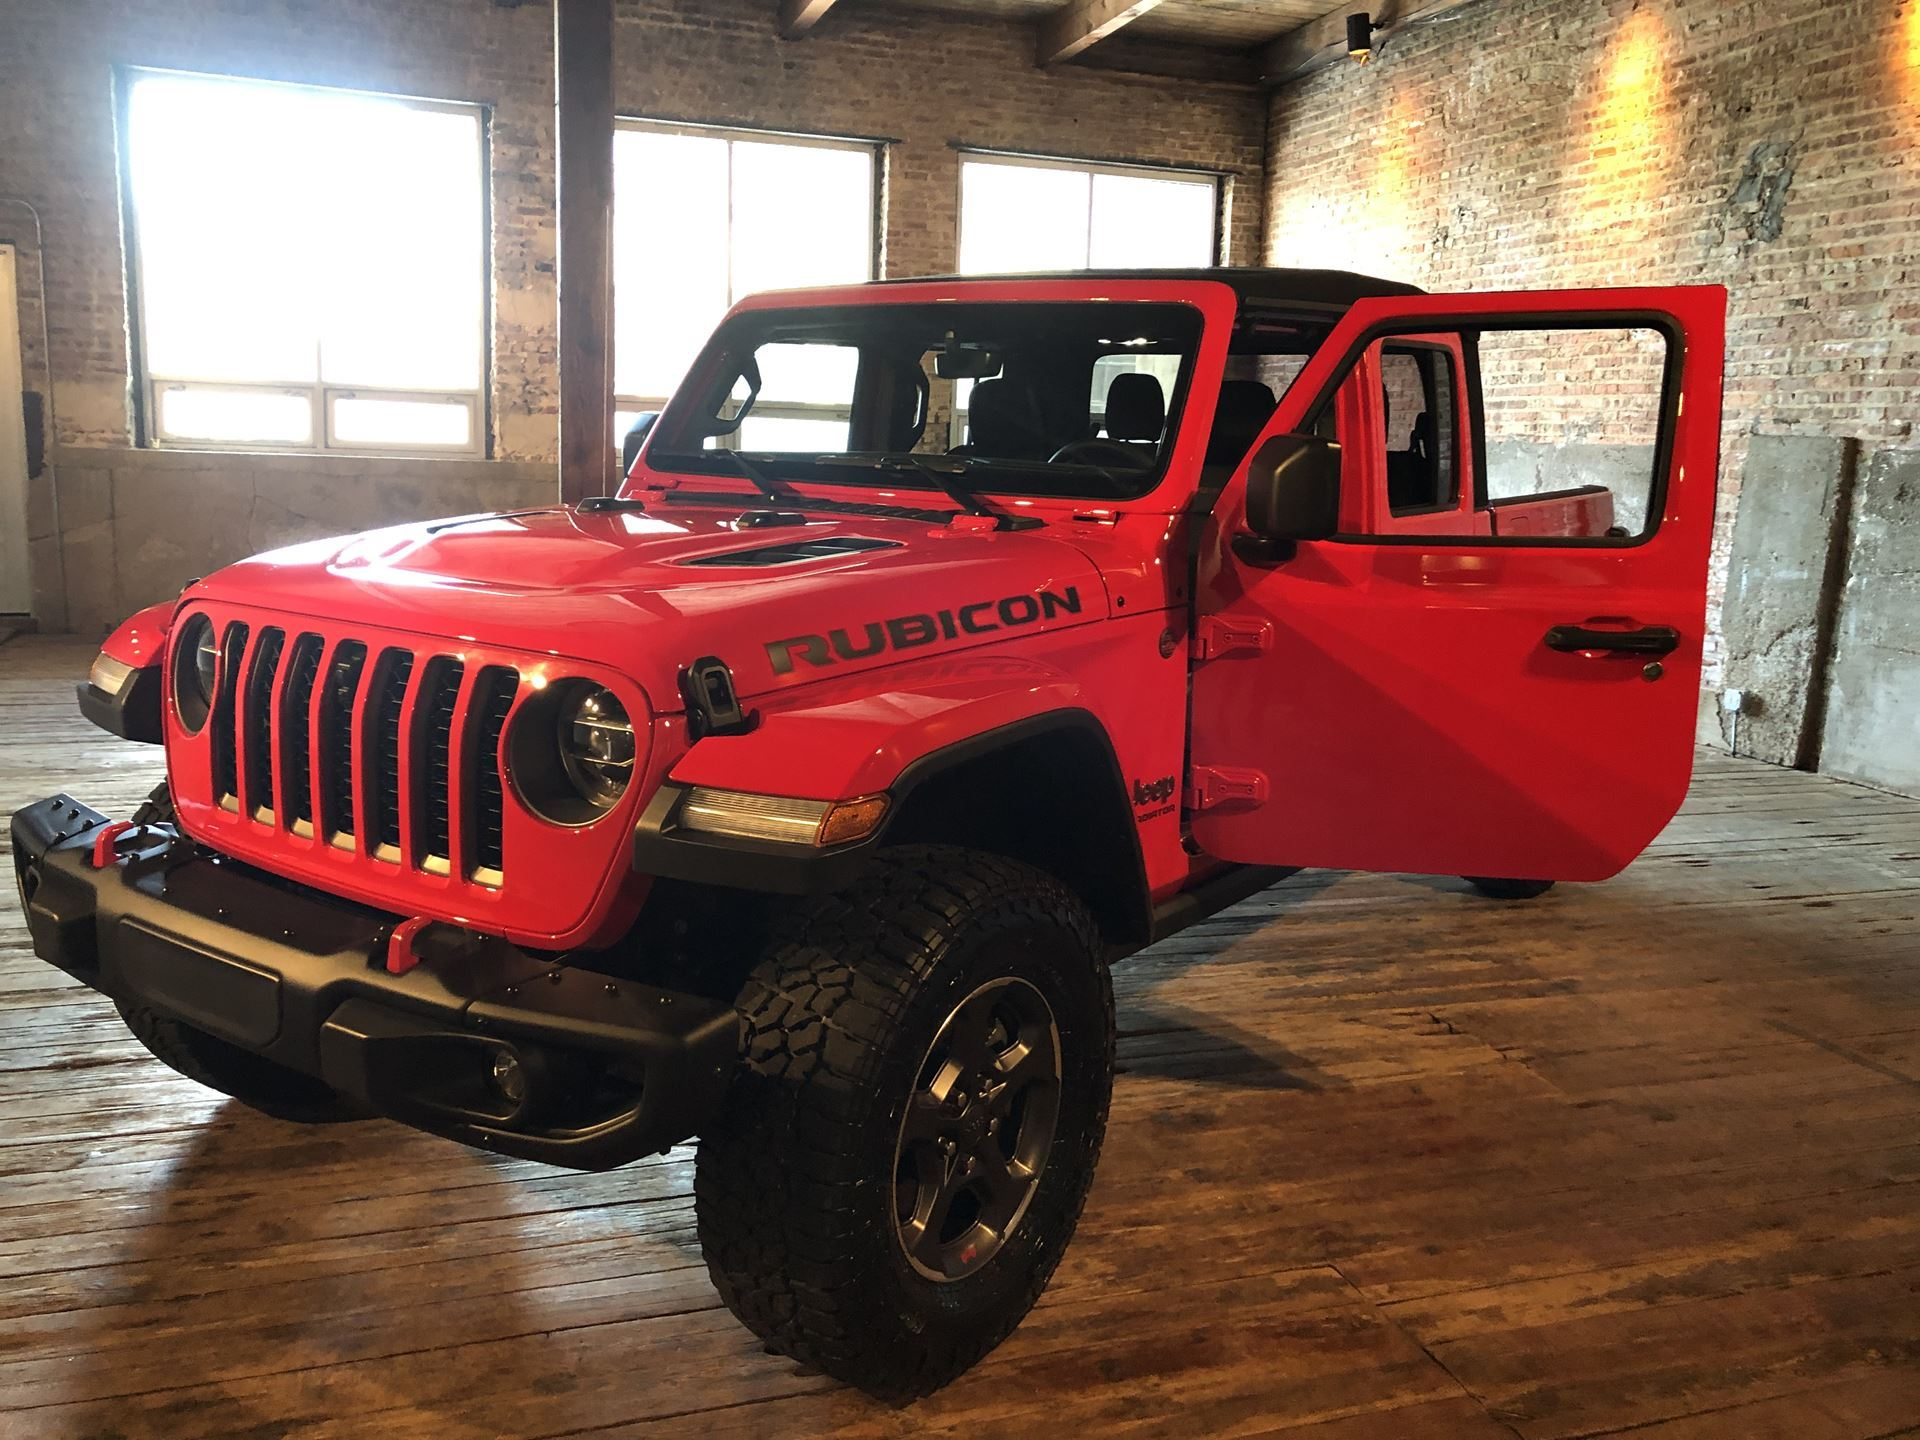 Building On The Success Of Its Iconic Wrangler Jeep Recently Introduced All New 2020 Gladiator What Refers To As Most Capable Midsize Truck